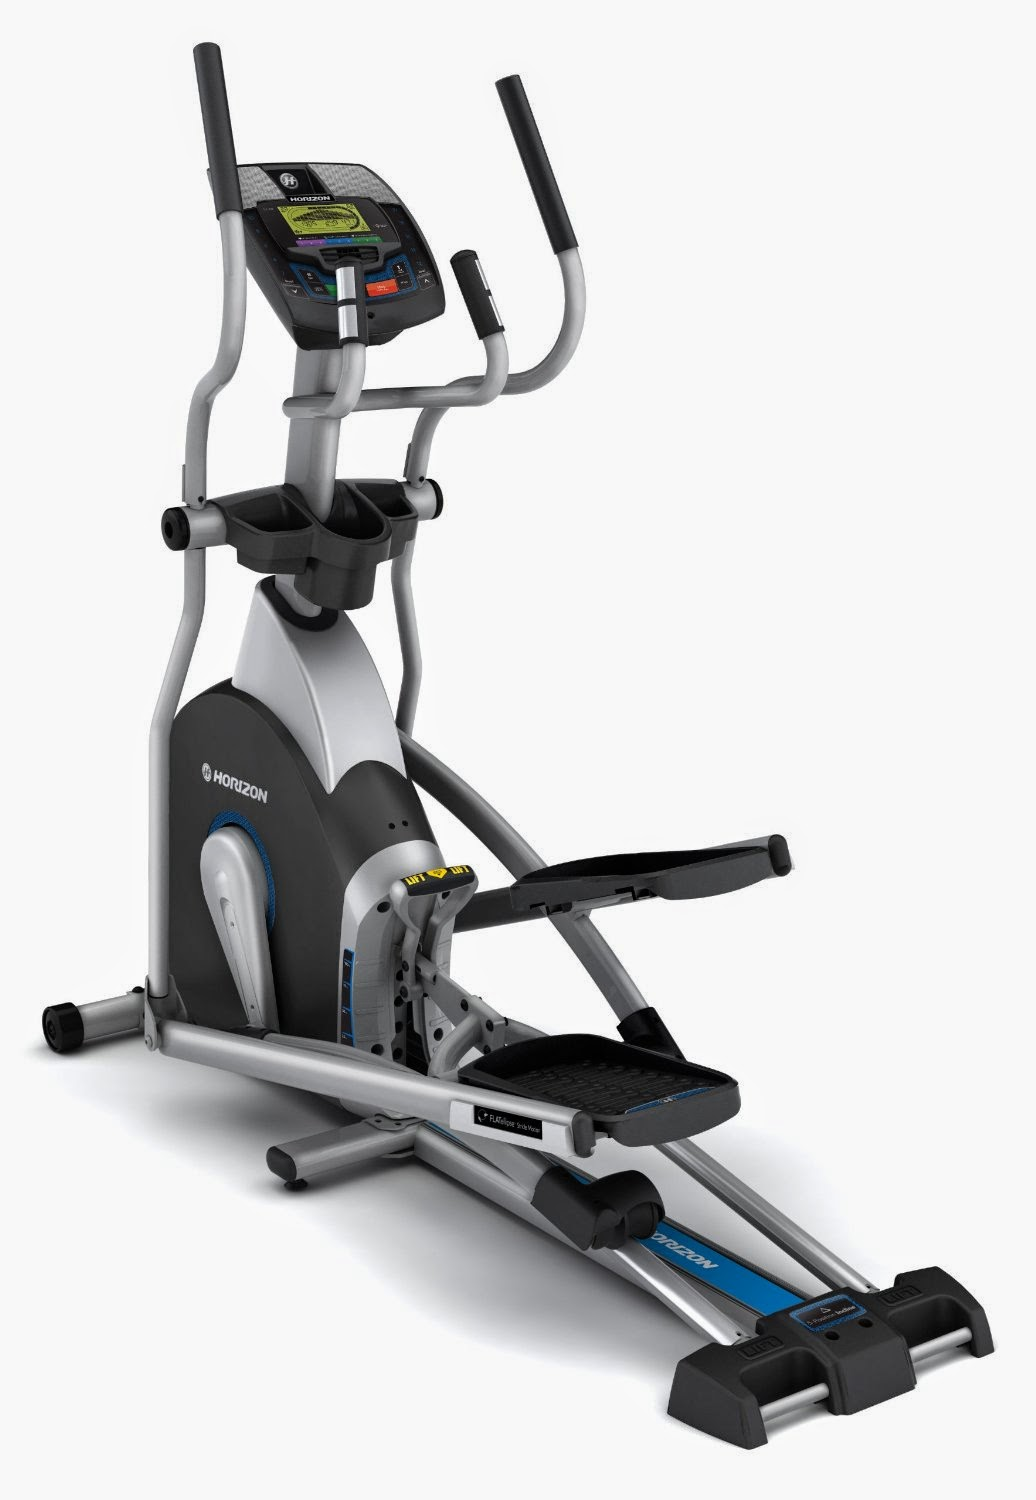 Horizon Fitness EX 69 2 Elliptical Trainer, picture, review features & specifications, plus compare with EX 79 2